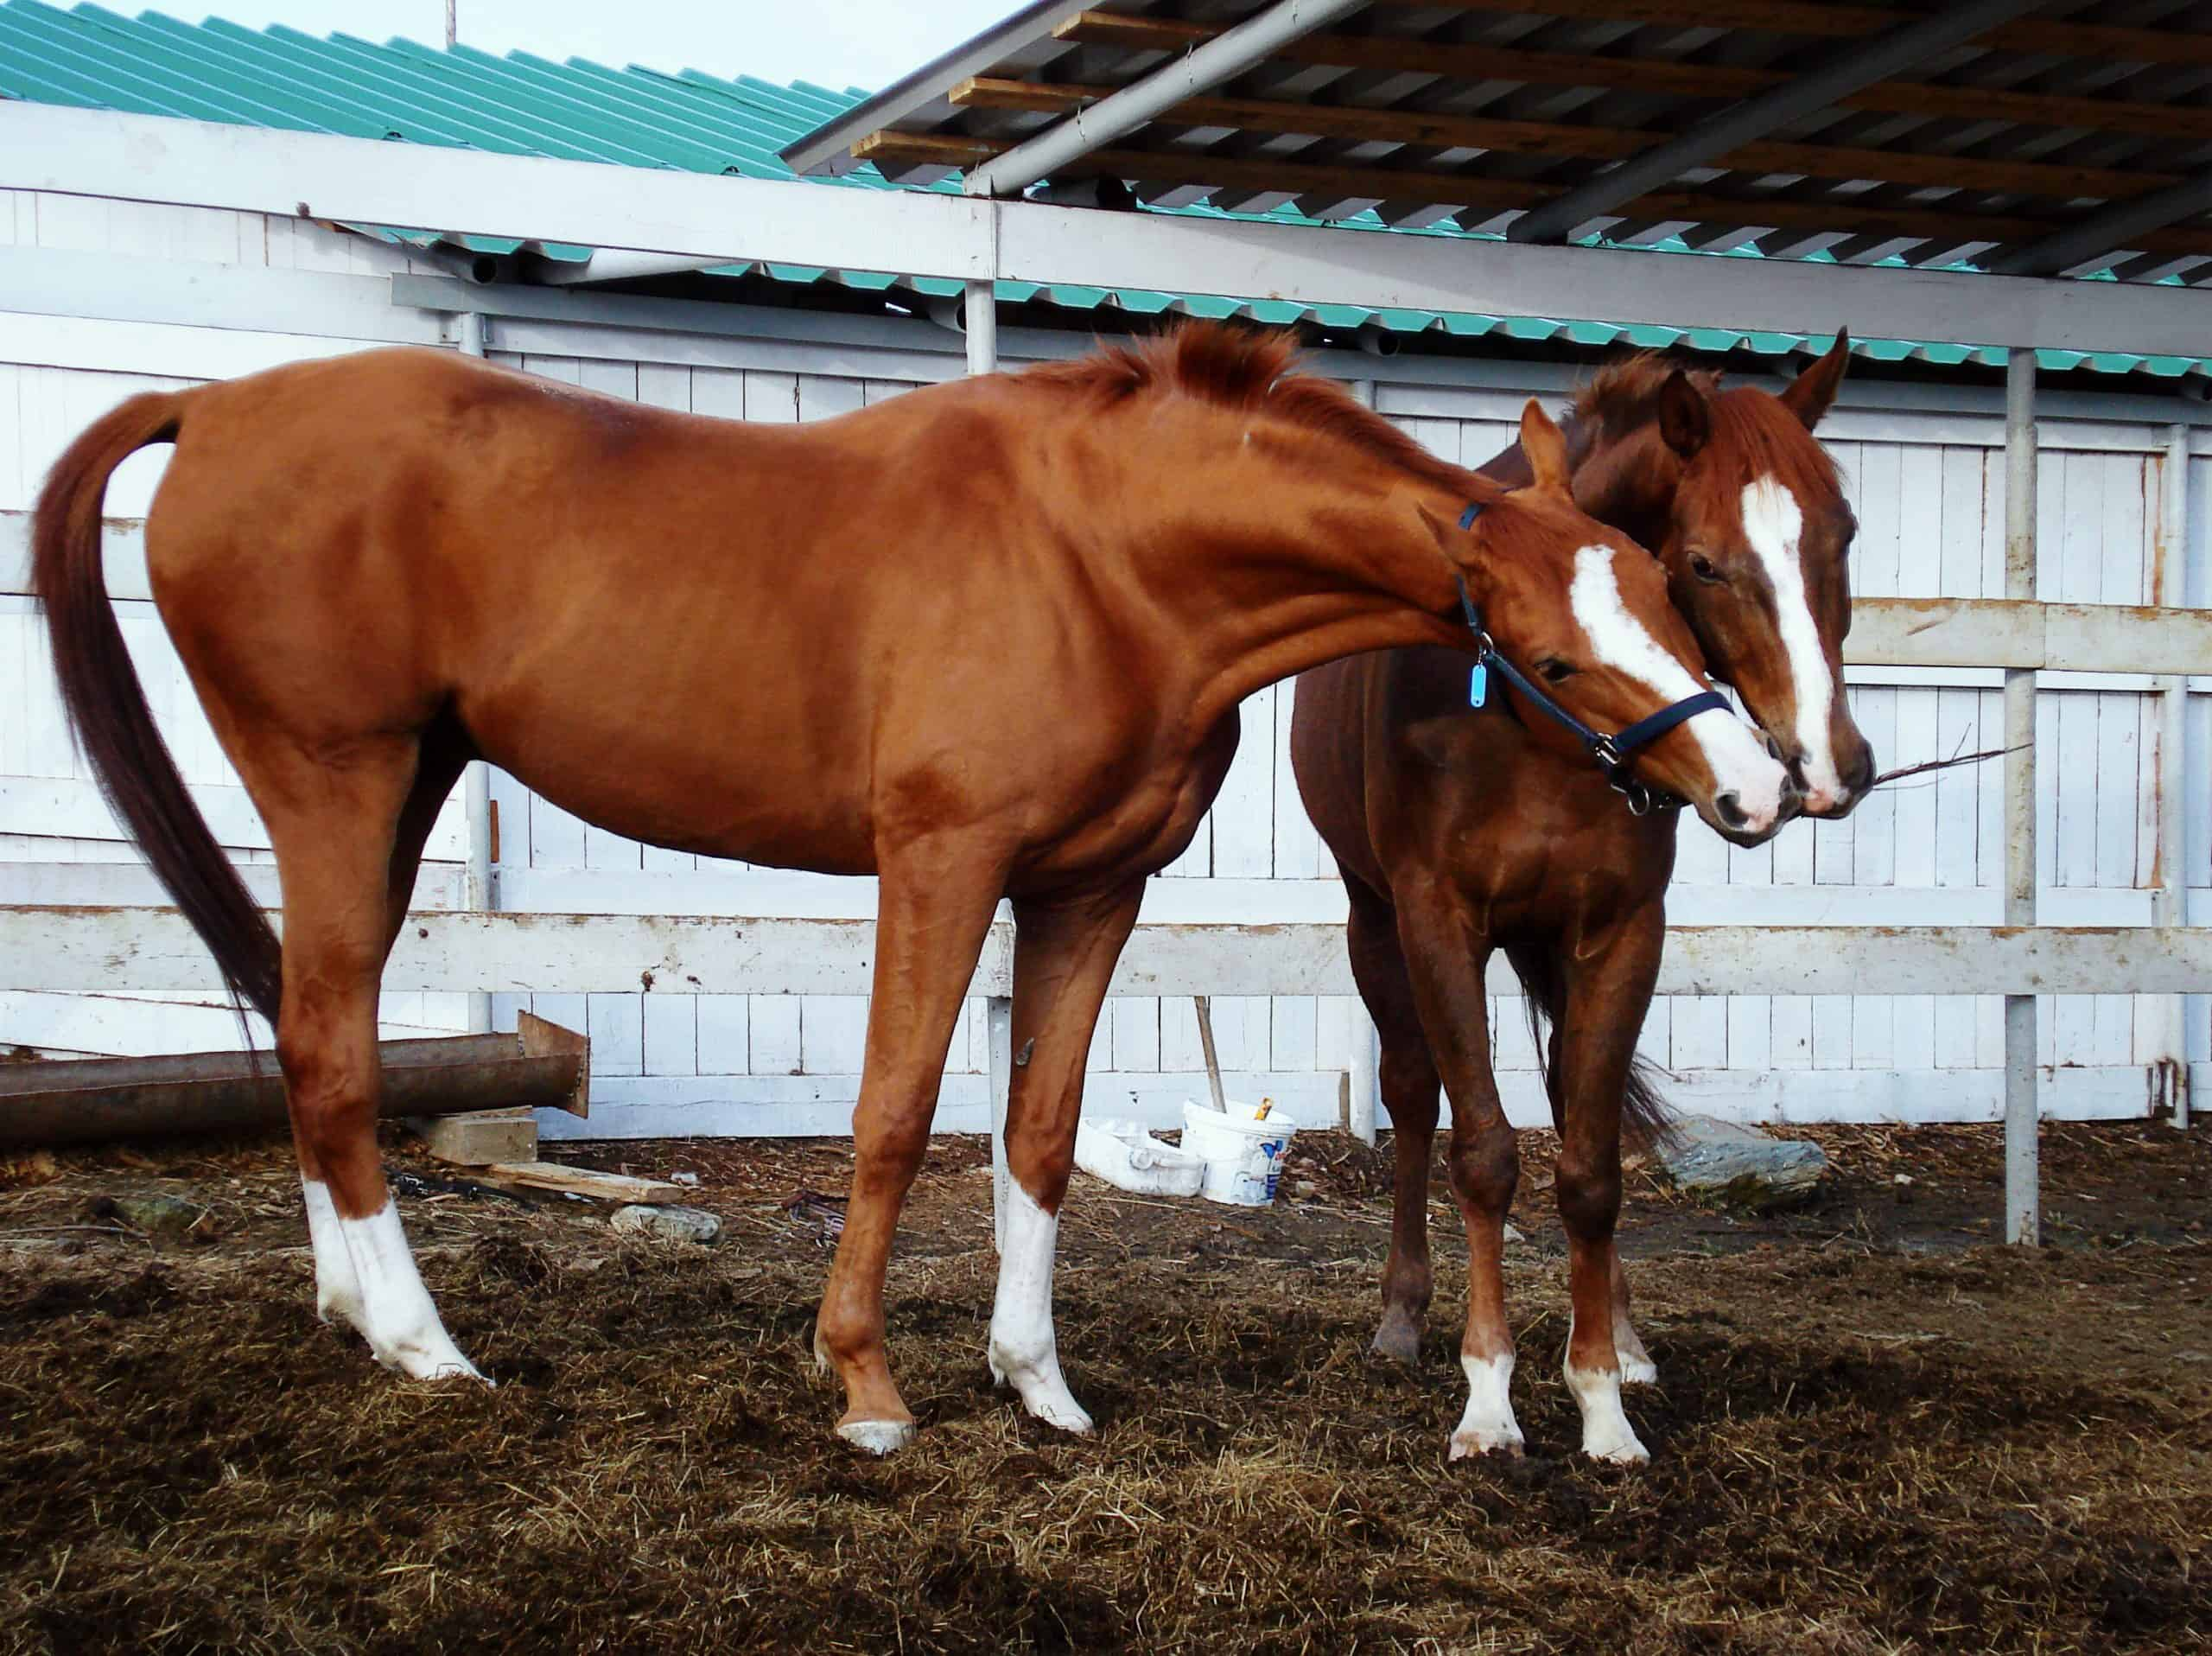 Two horses play in the paddock